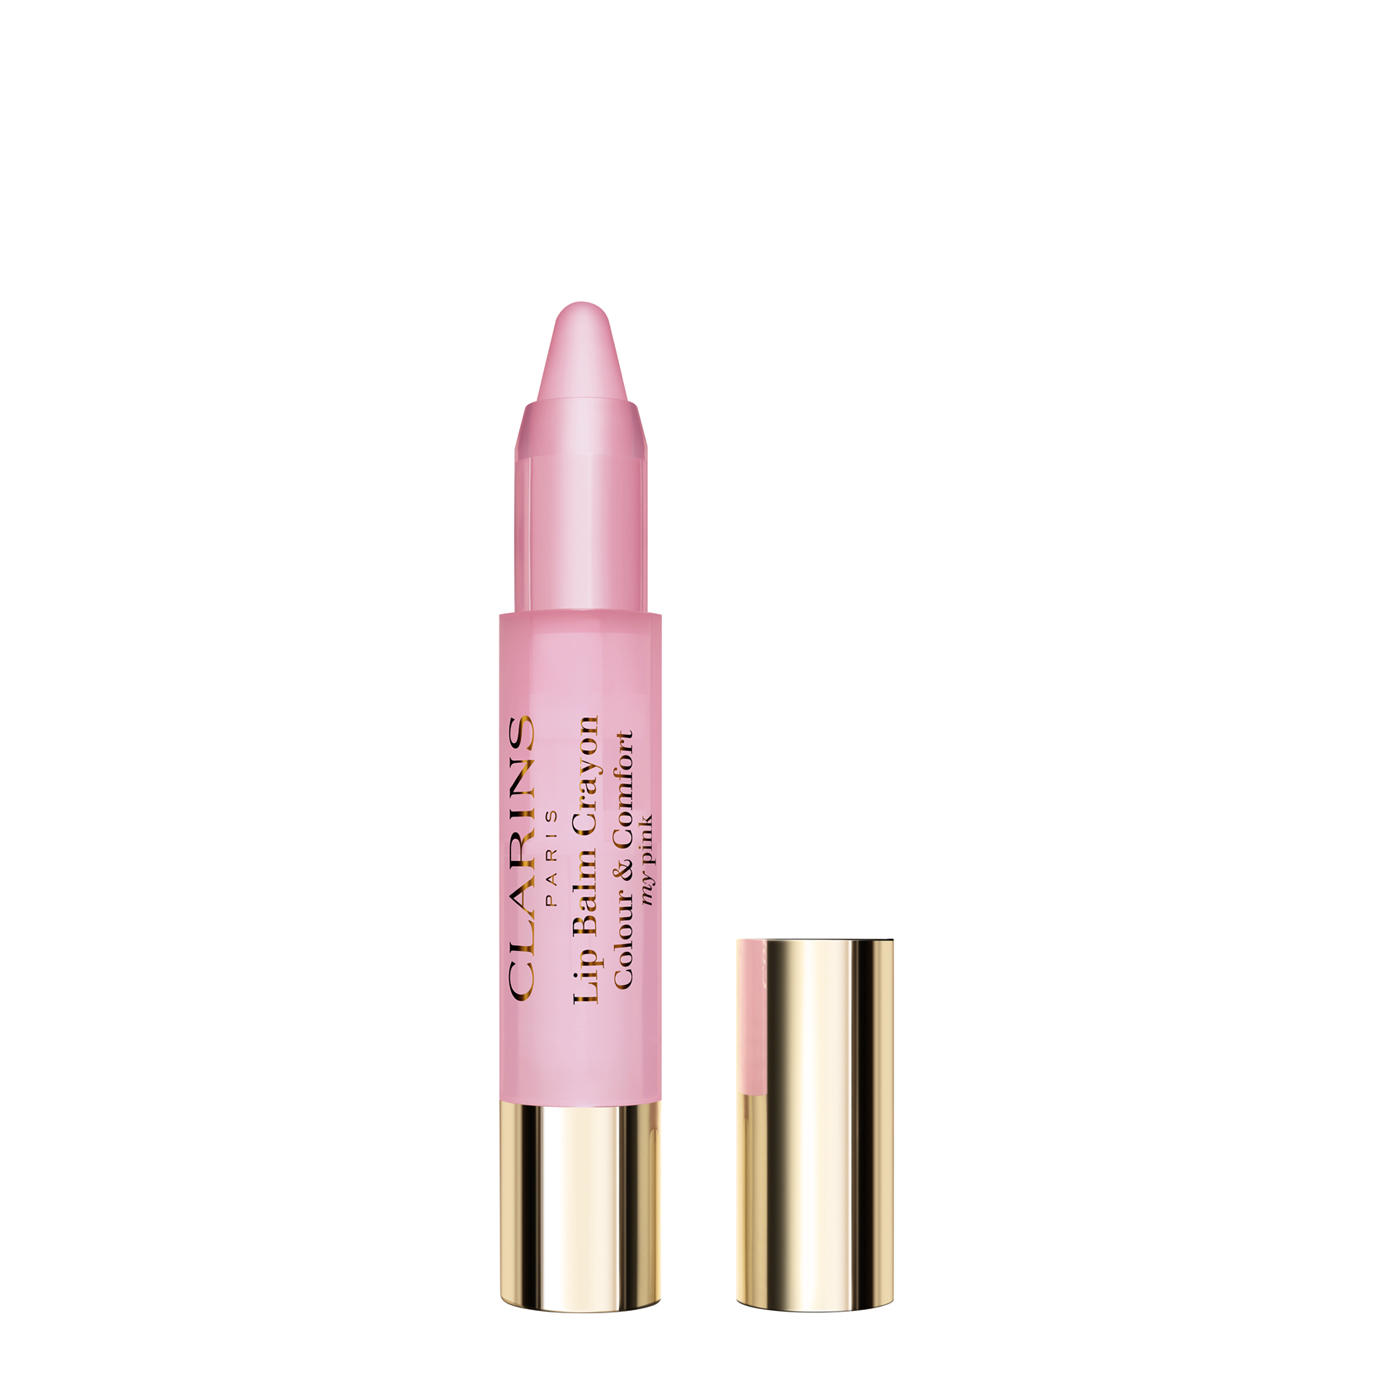 Lip Balm Crayon - A creamy texture that glides over the lips to give a natural, ultra-shiny effect with instant hydration that lasts. • A formula based on mango, apricot and shea butters that moisturizes lips and instantly provides suppleness, comfort and protection. • 6 delicious shades Shade 01 - my pink adapts to the colour of the lips: sensitive pigments react with the pH of lips and instantly boost their natural shade.